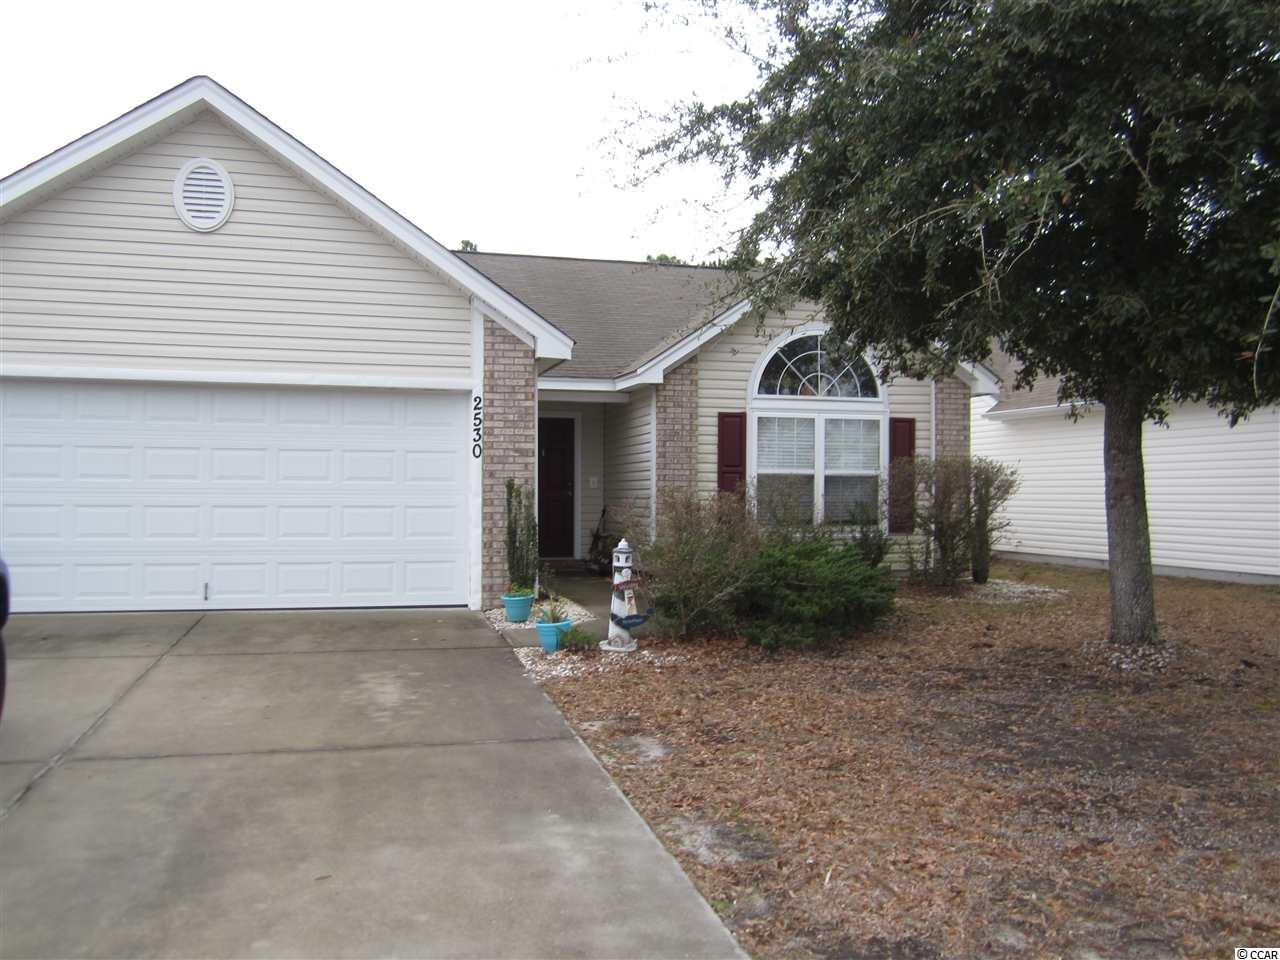 This is your chance to own a home in the popular Avalon community in Carolina Forest.  Open floor plan with vaulted ceilings in the living room.  Split floor plan and large backyard that backs up to the woods.  Well maintained with the HVAC and water heater replaced in 2016.  Avalon is a popular community with wonderful amenities, outdoor pool, playground area, picnic area, basketball courts, soccer field and baseball diamond.  Avalon is approximately 15 minutes to the Beach so all of Myrtle Beach attractions can be enjoyed.  Measurements are approximate, Buyer should verify.